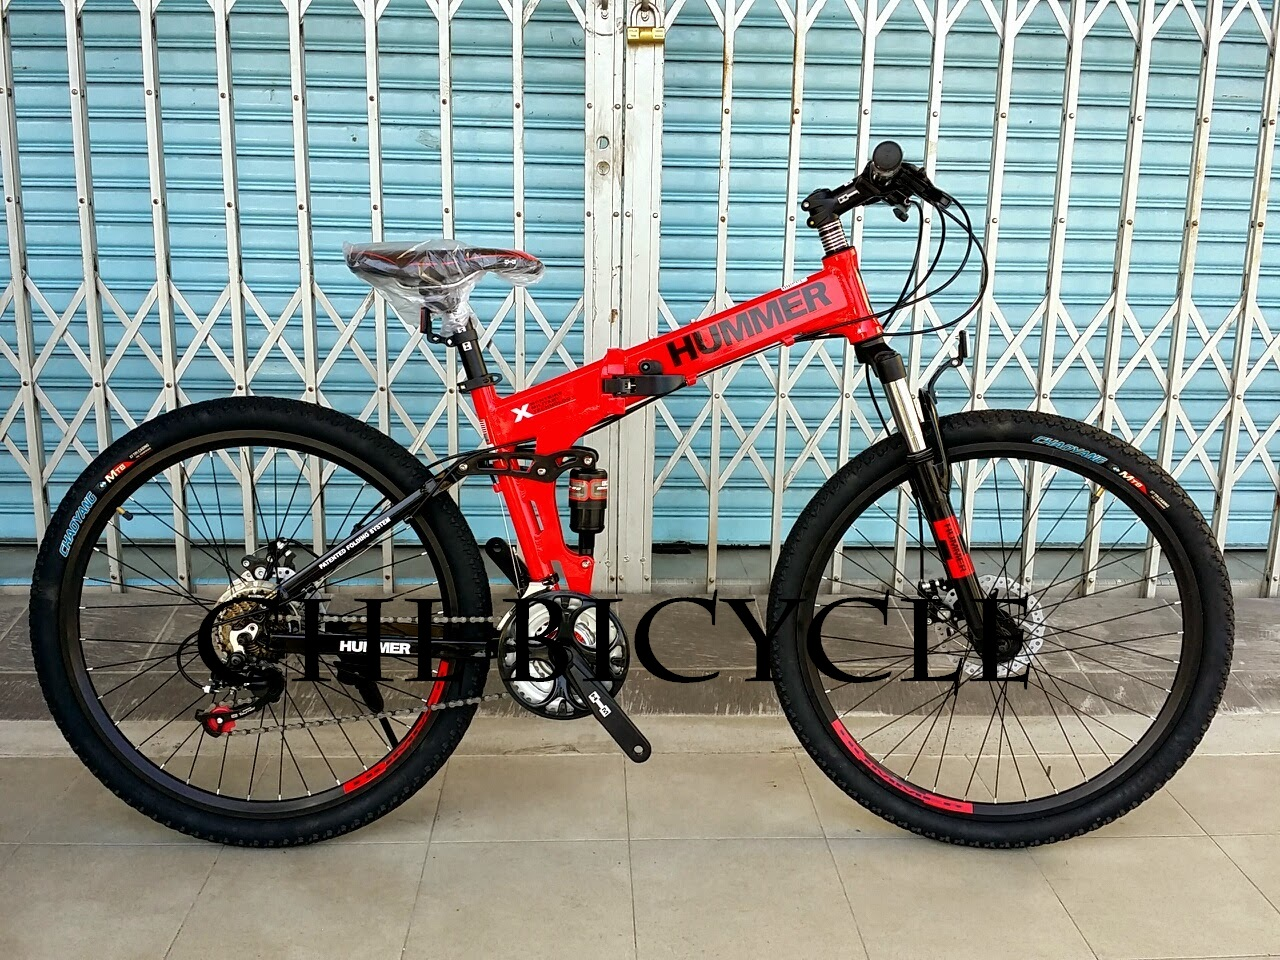 Choo Ho Leong Chl Bicycle 26 Quot Hummer Full Suspension